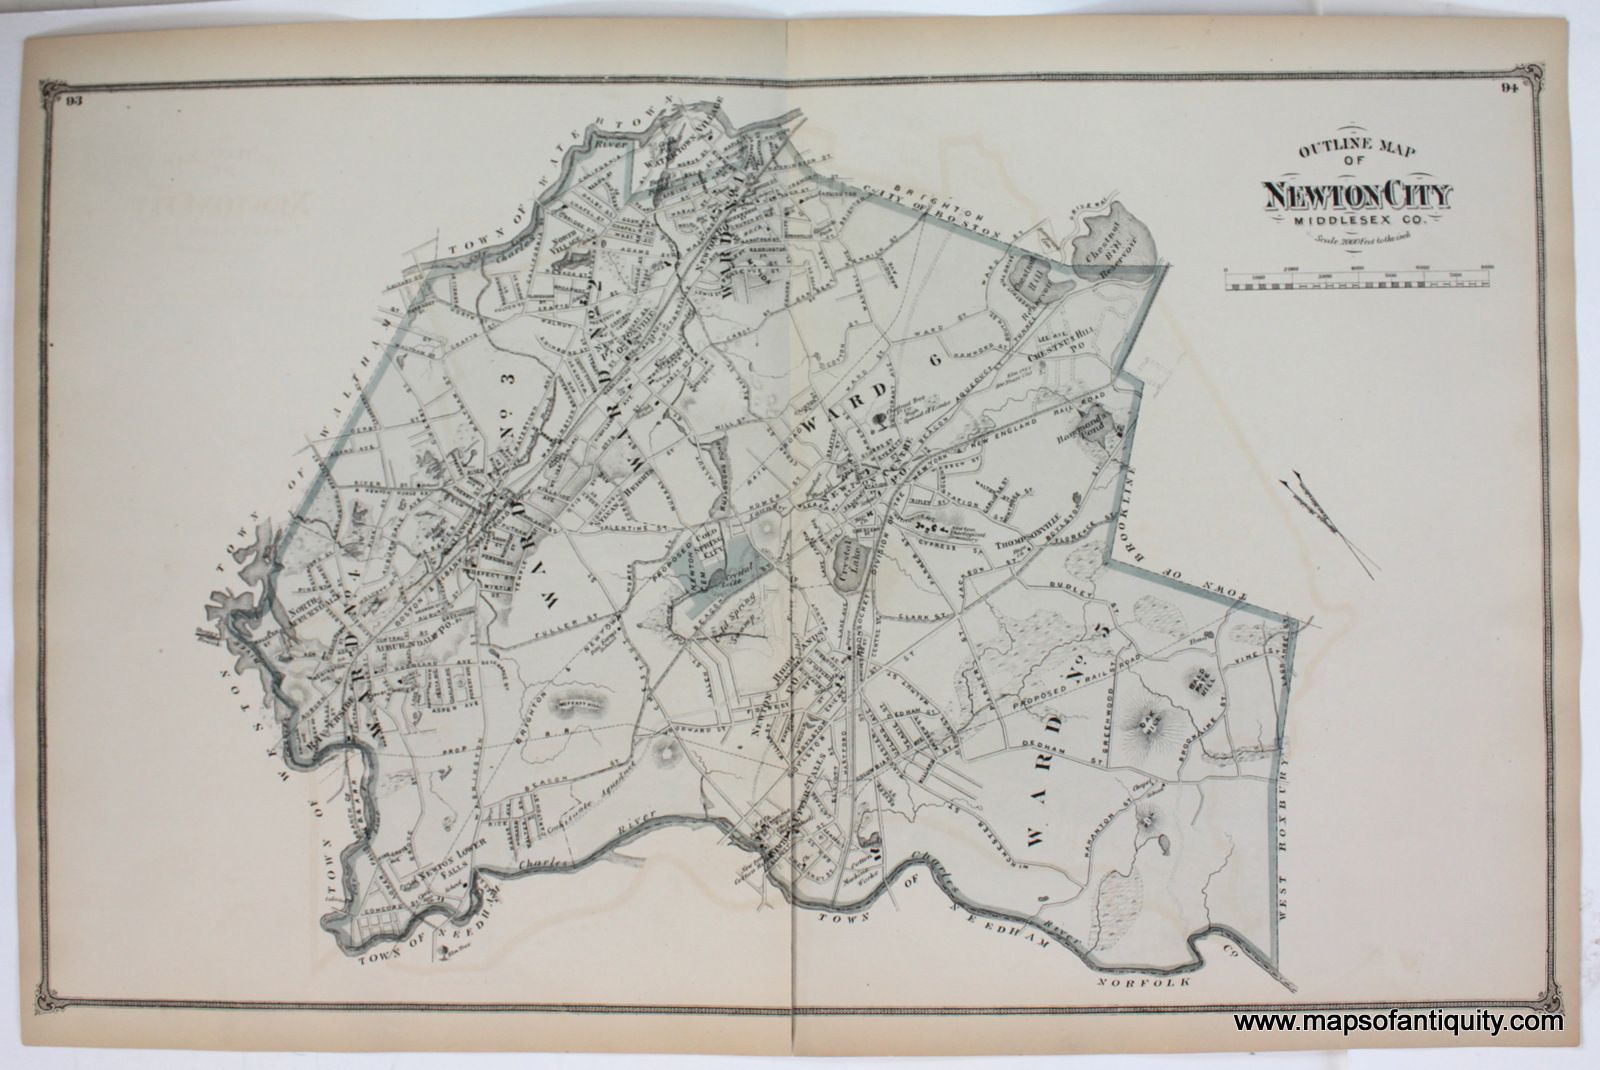 Outline Map of Newton City Middle Co. (MA) - Antique Maps and ... on